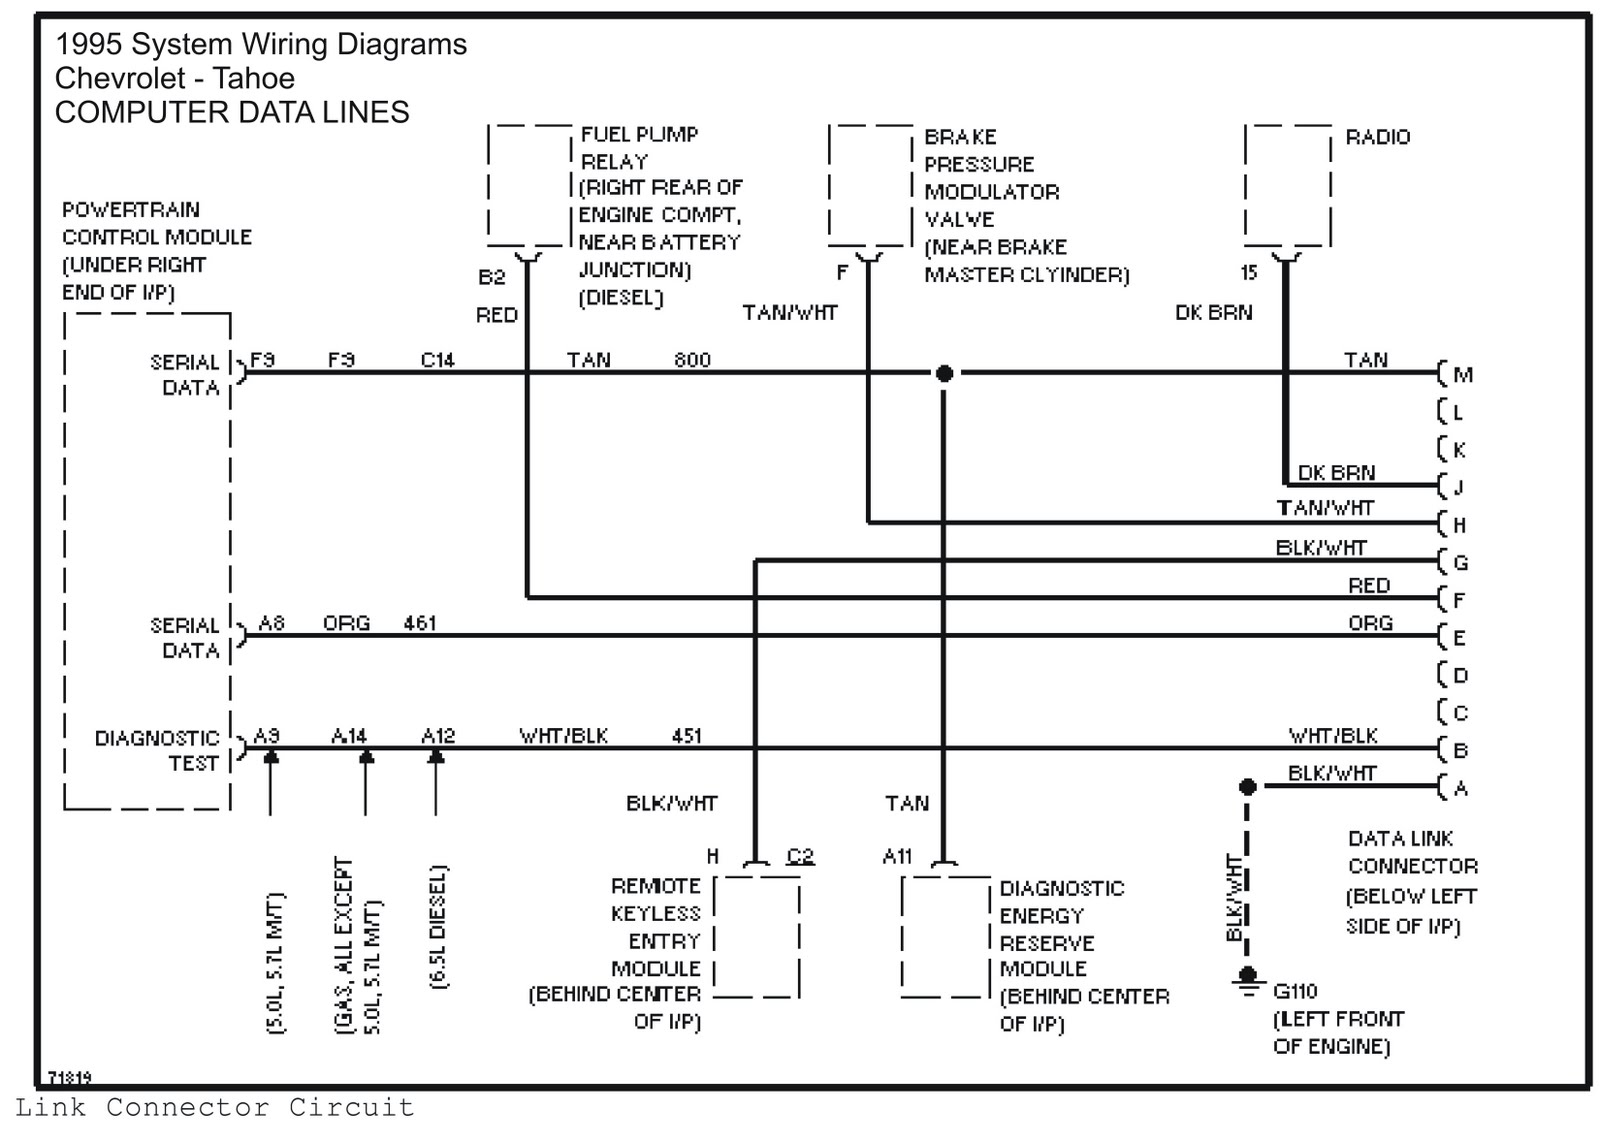 Military Trailer Wiring Diagram 2016 Ford F250 System Wire Diagramdata Link Connector Data Image 1995 Diagrams Chevrolet Tahoe Computer